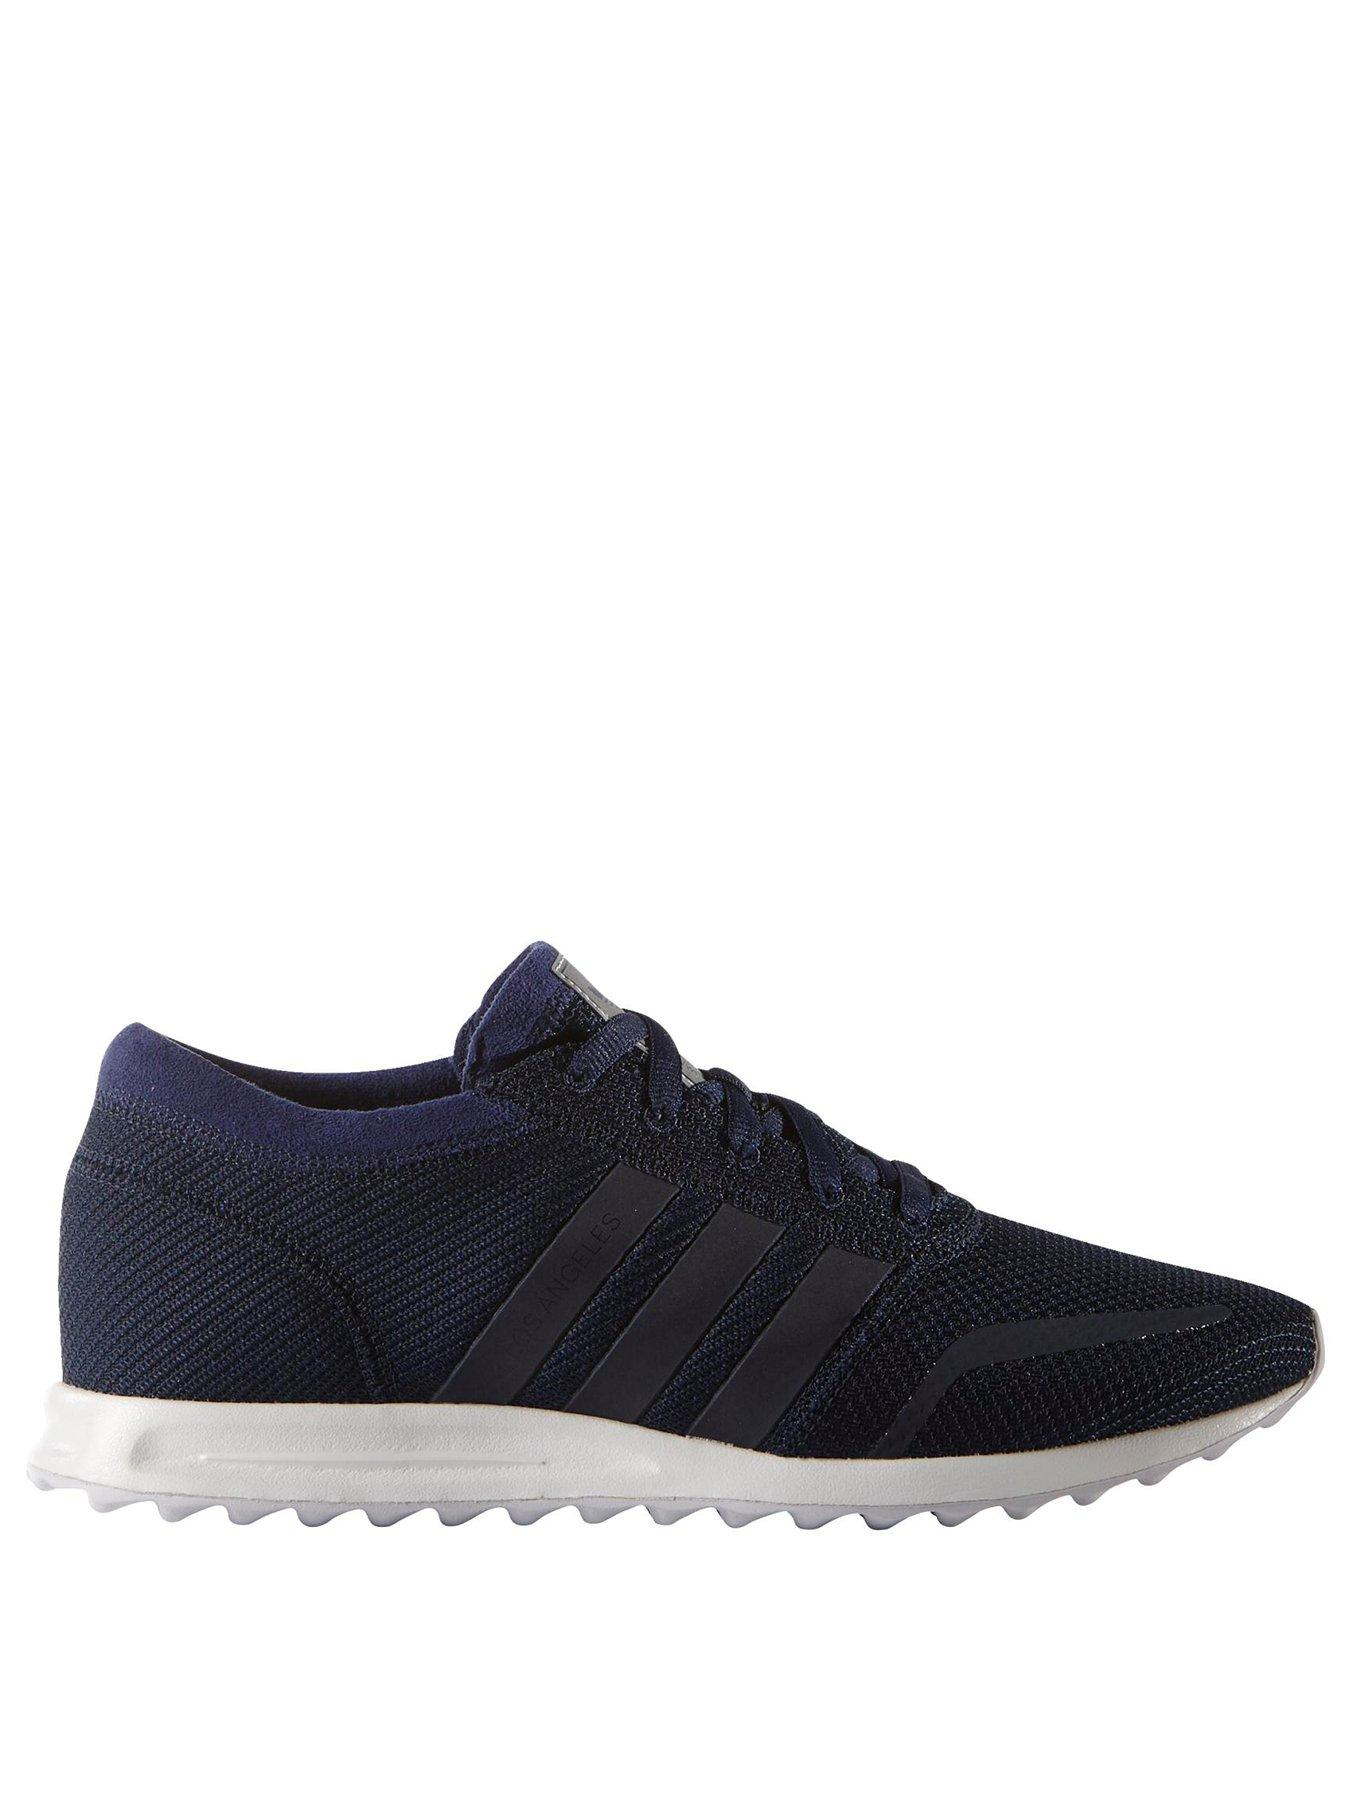 adidas mens pumps